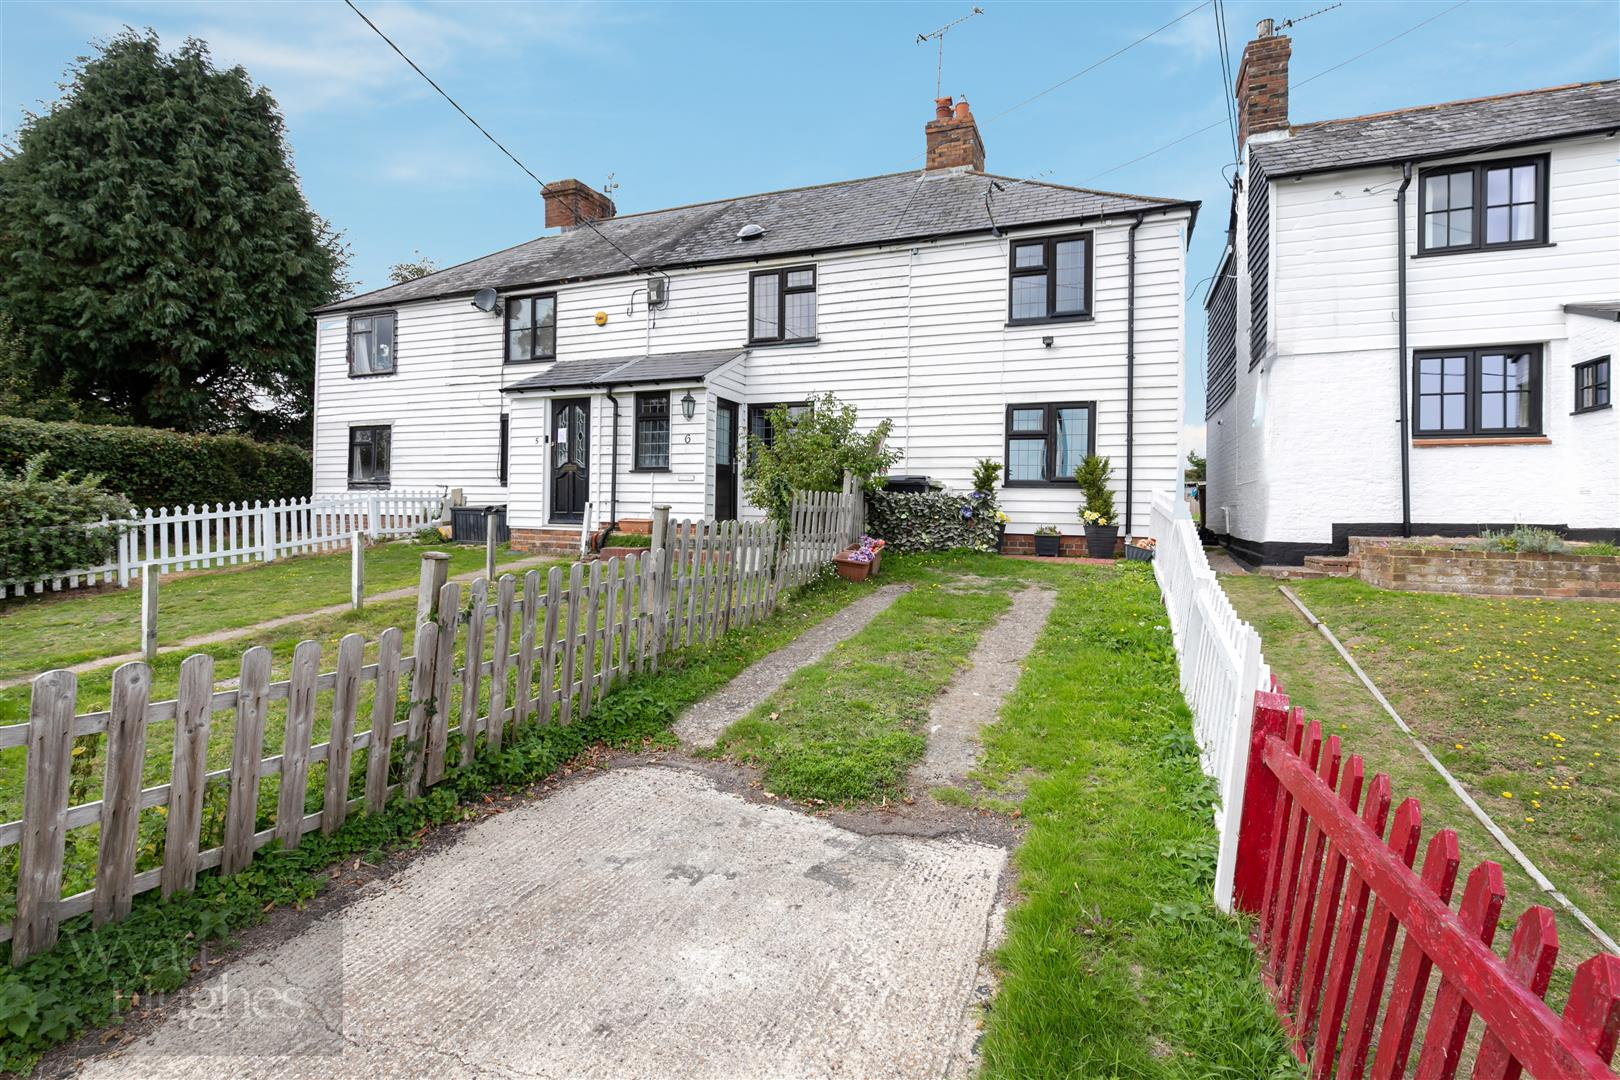 2 bed end-of-terrace-house for sale in The Thorne, Hastings, TN35